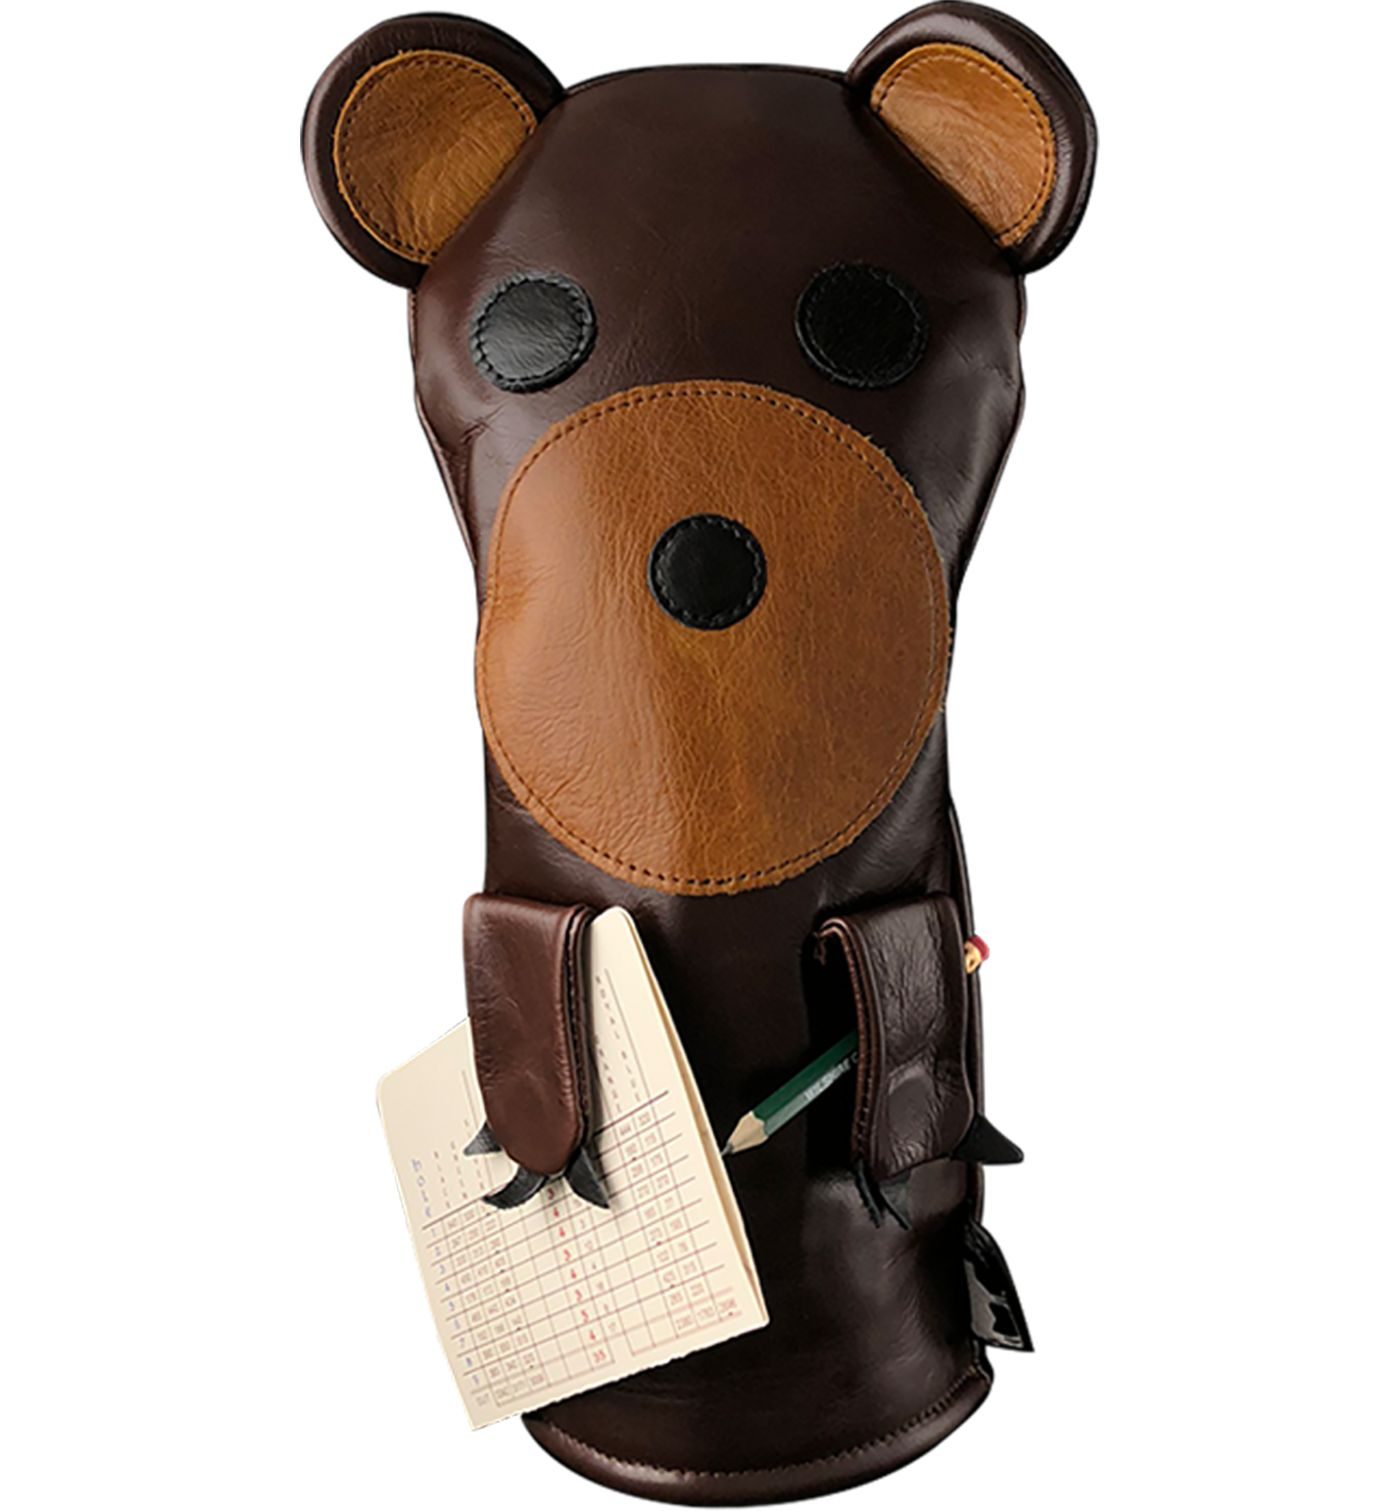 Dormie Workshop Tokey The Bear Driver Headcover